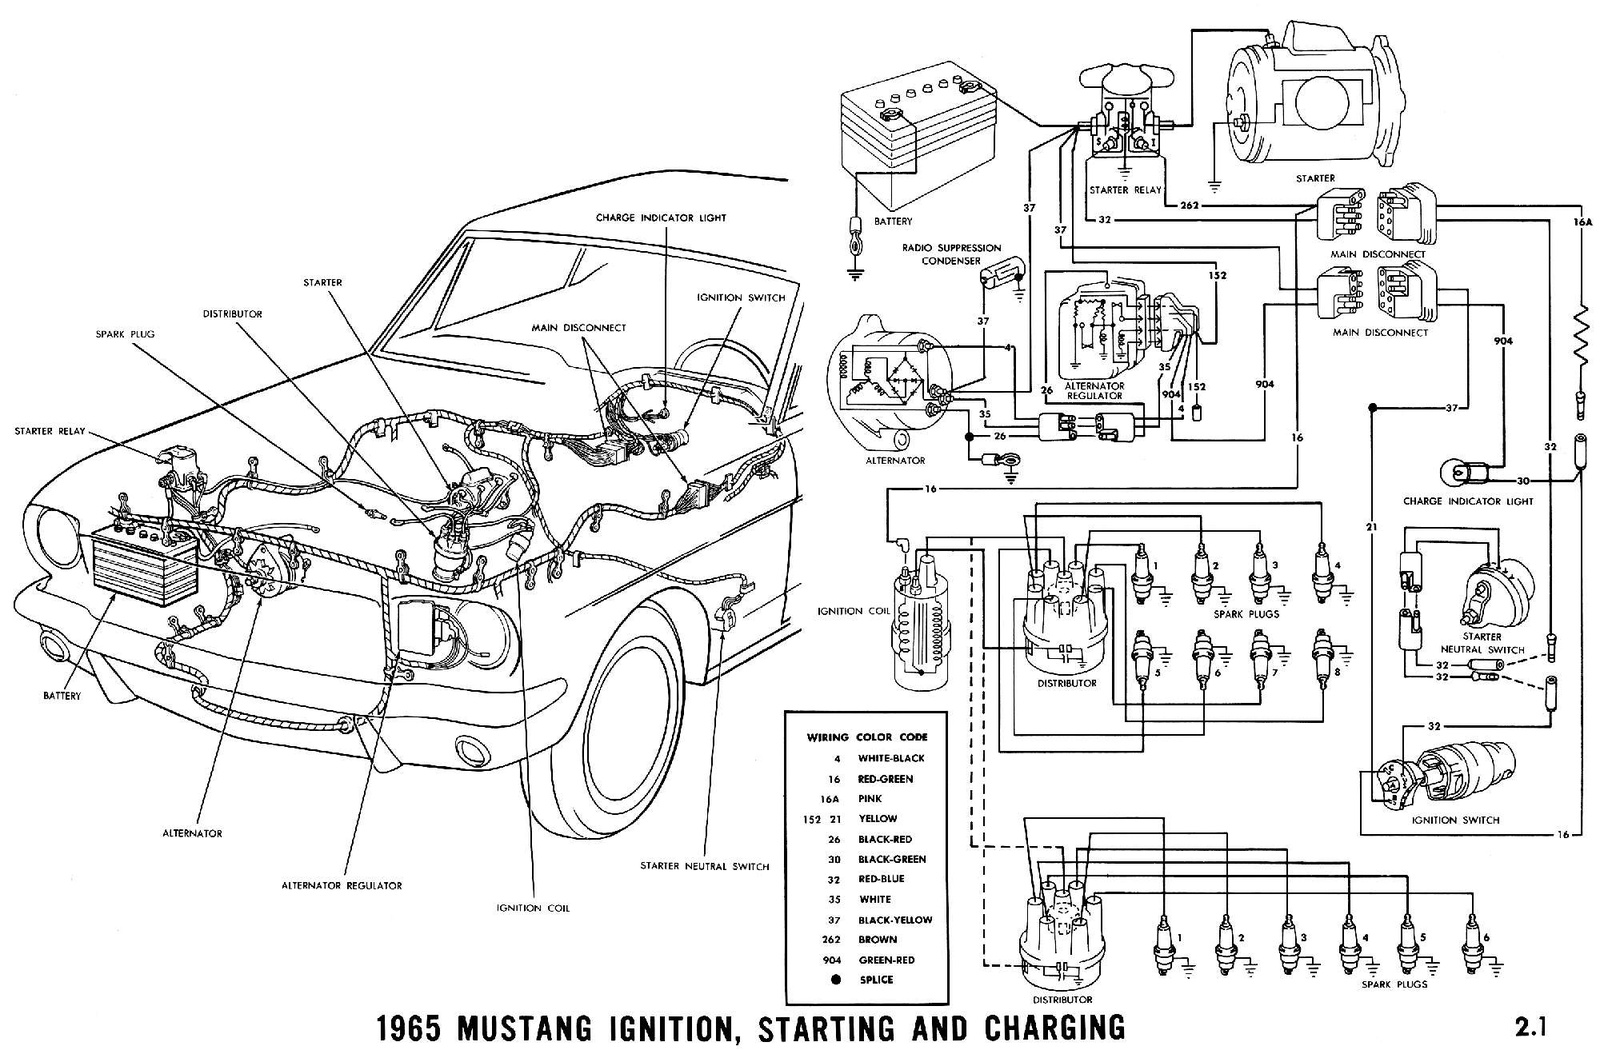 hight resolution of 65 mustang column wiring diagram wiring diagram expert 1968 ford mustang ignition wiring